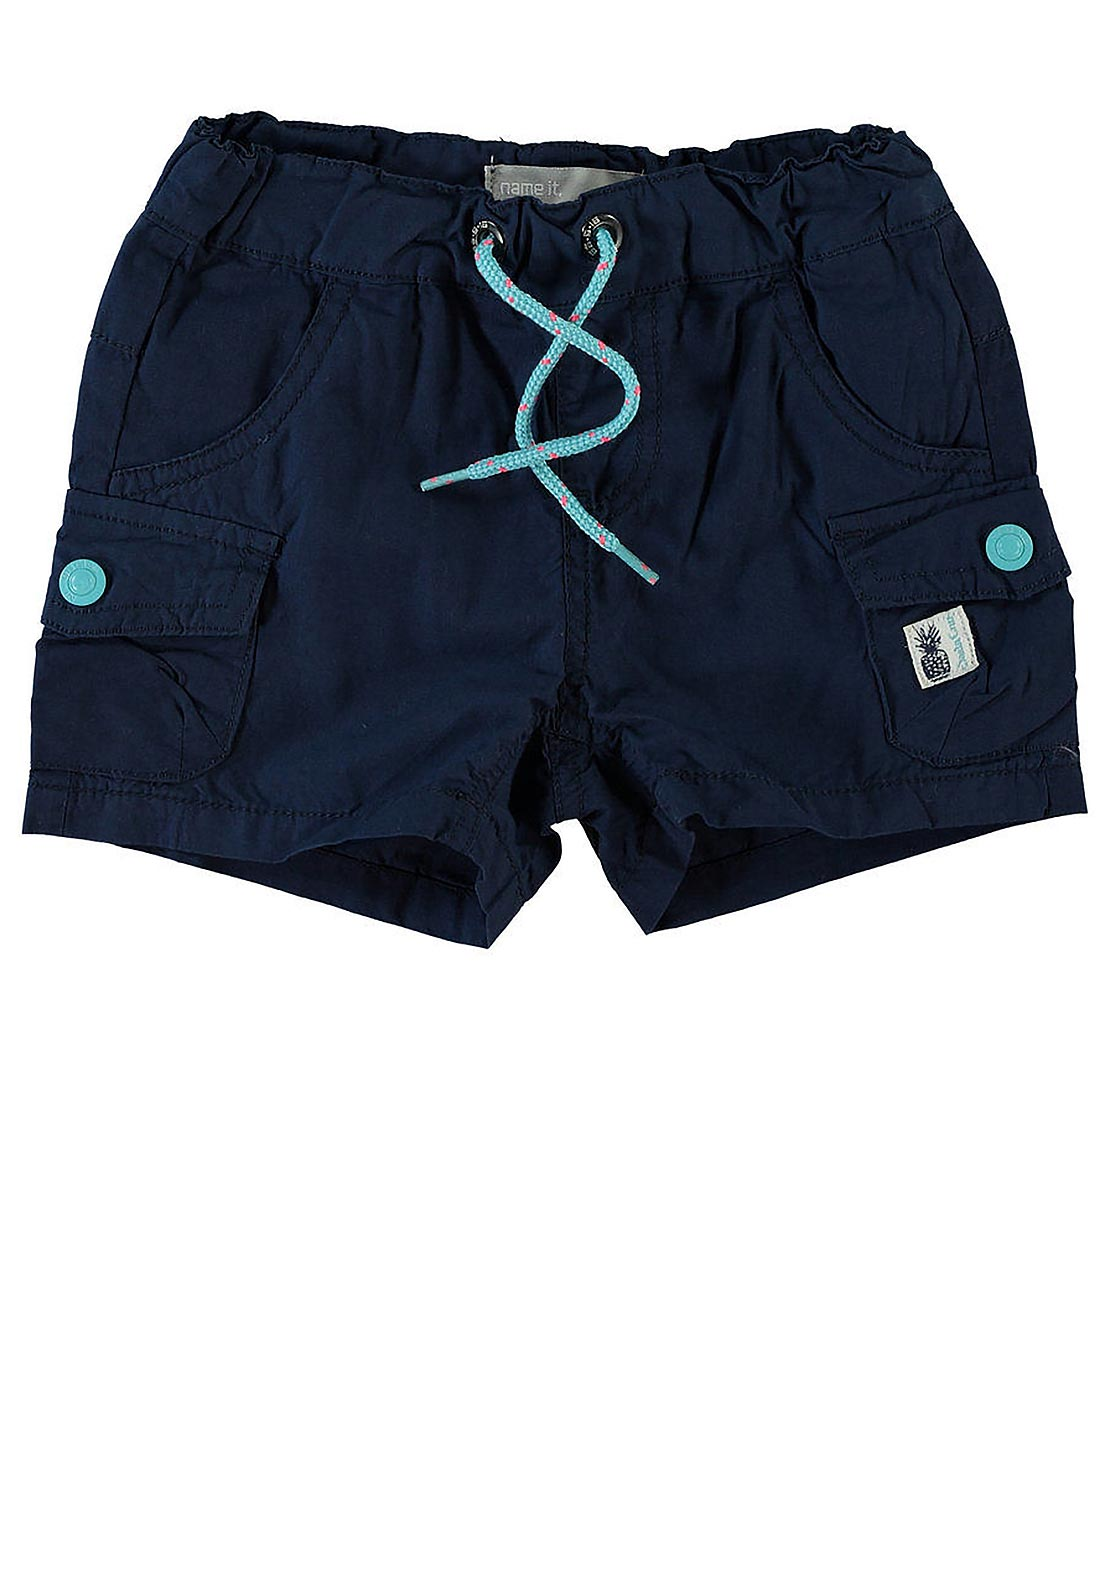 Name It Mini Boys Lon Shorts, Dress Blues